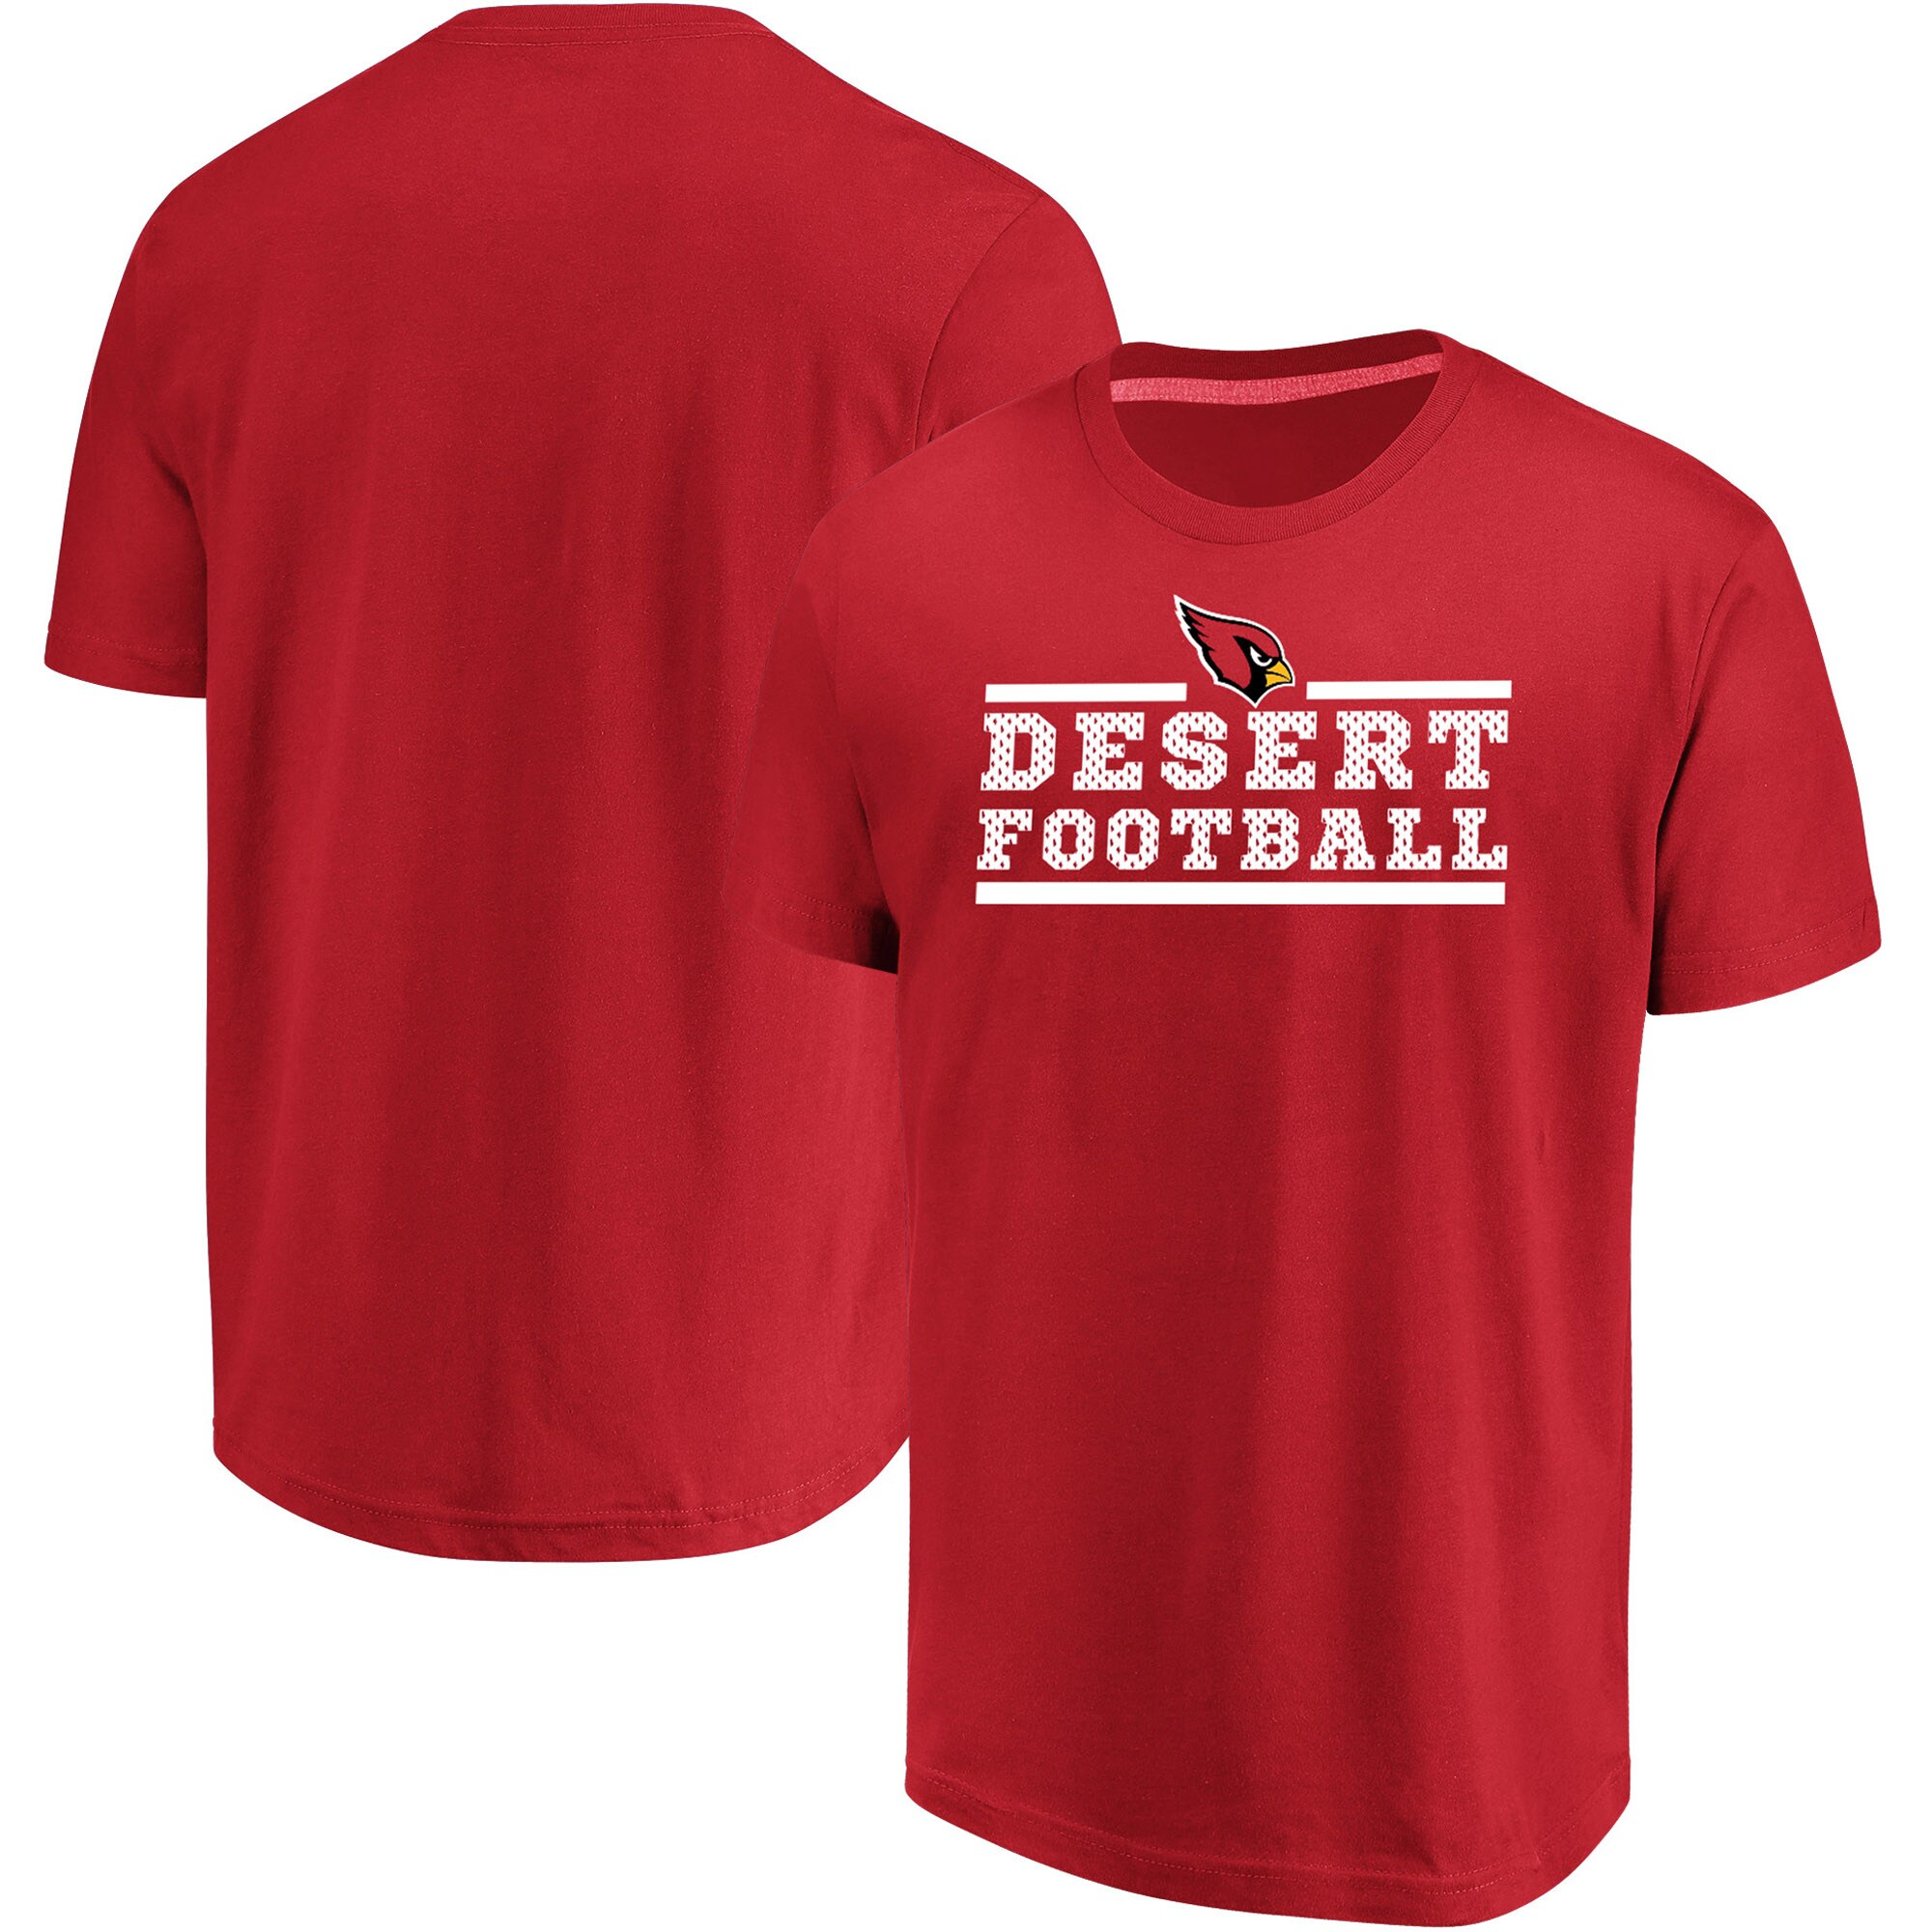 Arizona Cardinals Majestic Big & Tall Safety Blitz T-Shirt - Cardinal